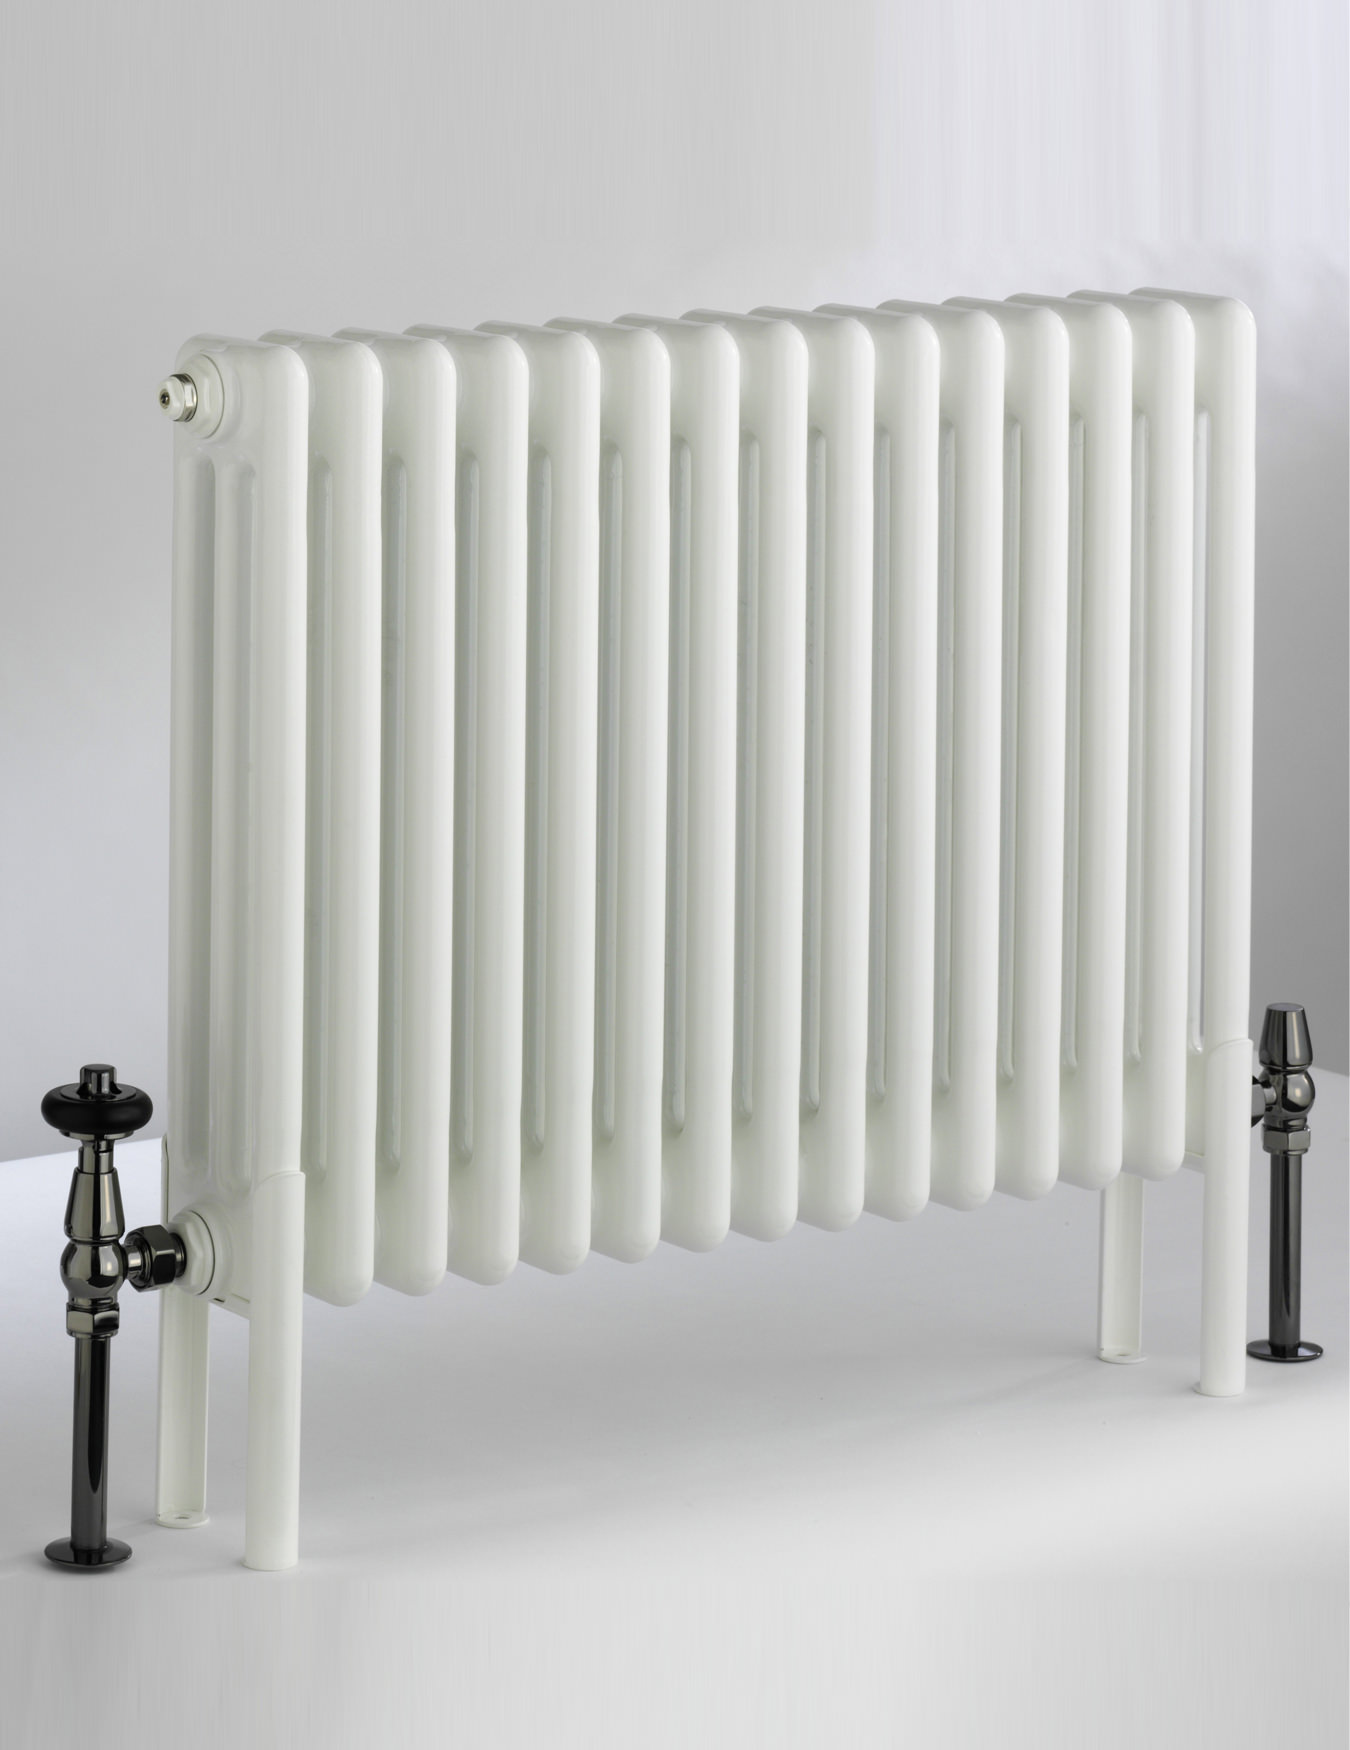 Dq Heating Peta White 3 Column Radiator 592mm High 3 600 3